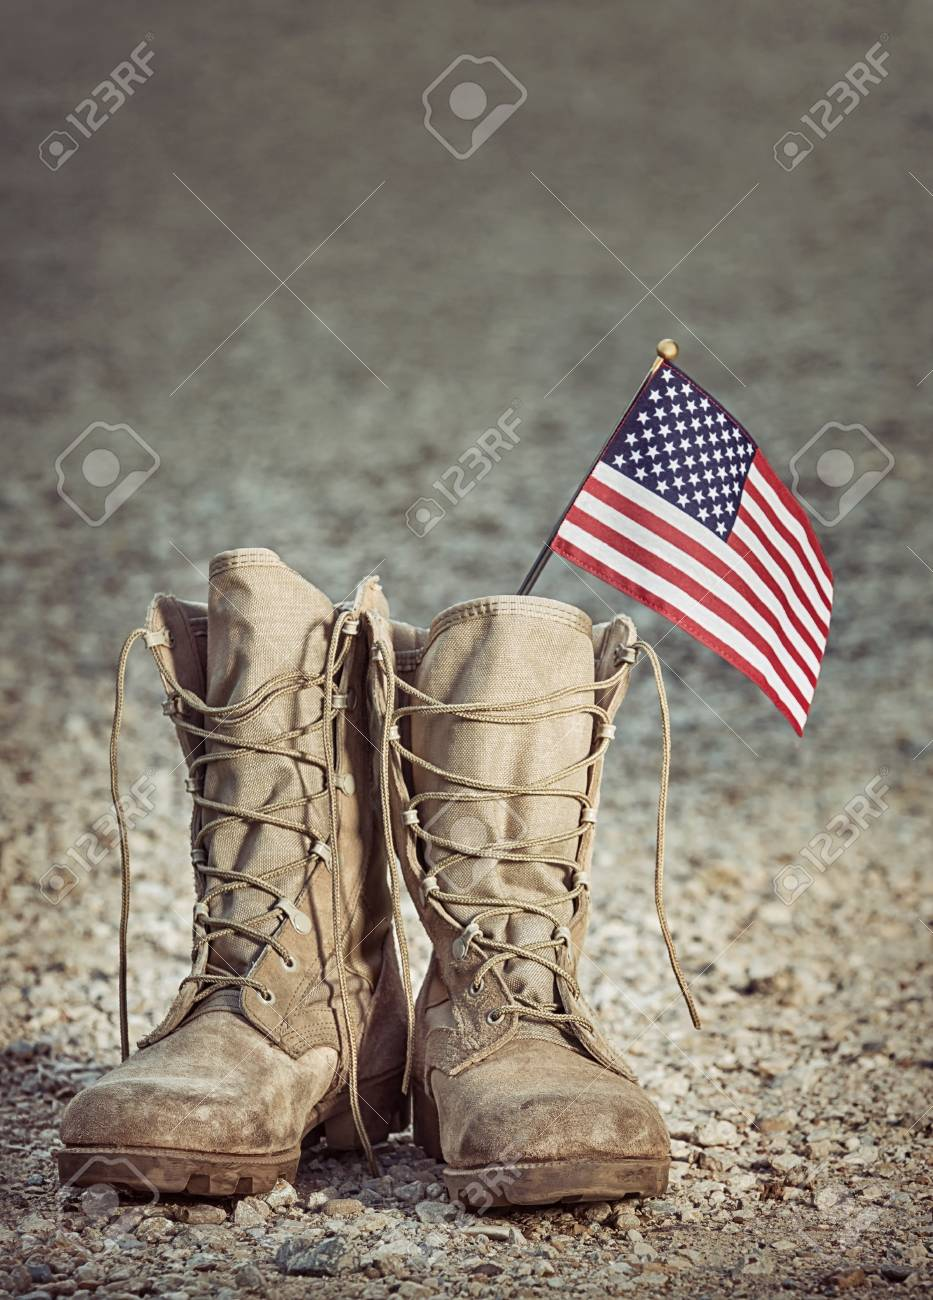 56159c66e9f9 Old military combat boots with the American flag. Rocky gravel background  with copy space.